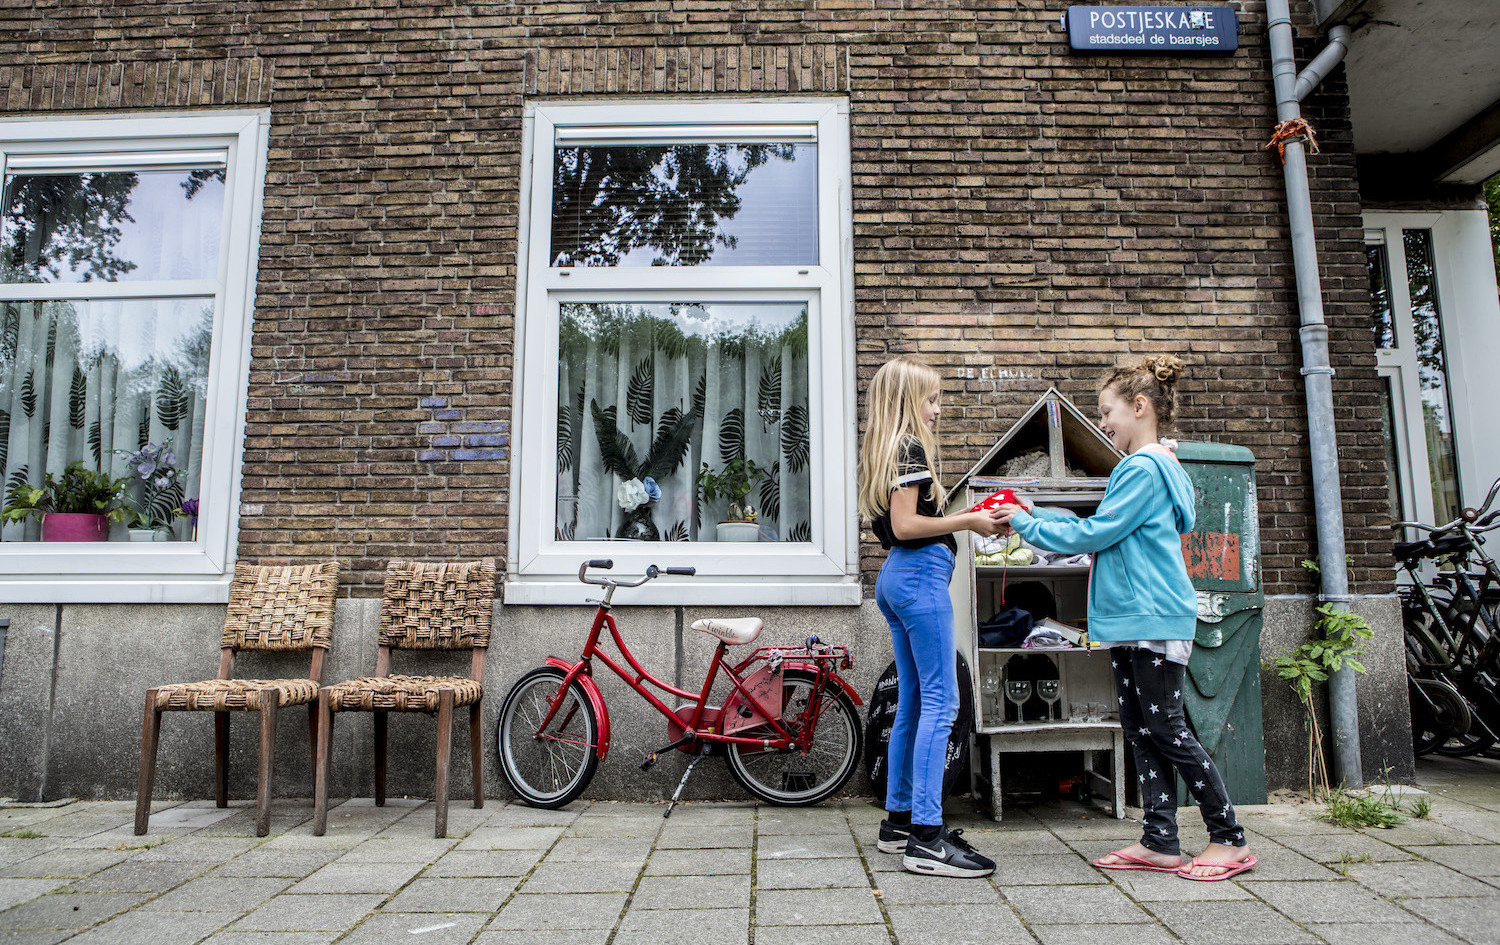 Book tells 200 stories of how the sharing economy is transforming lives